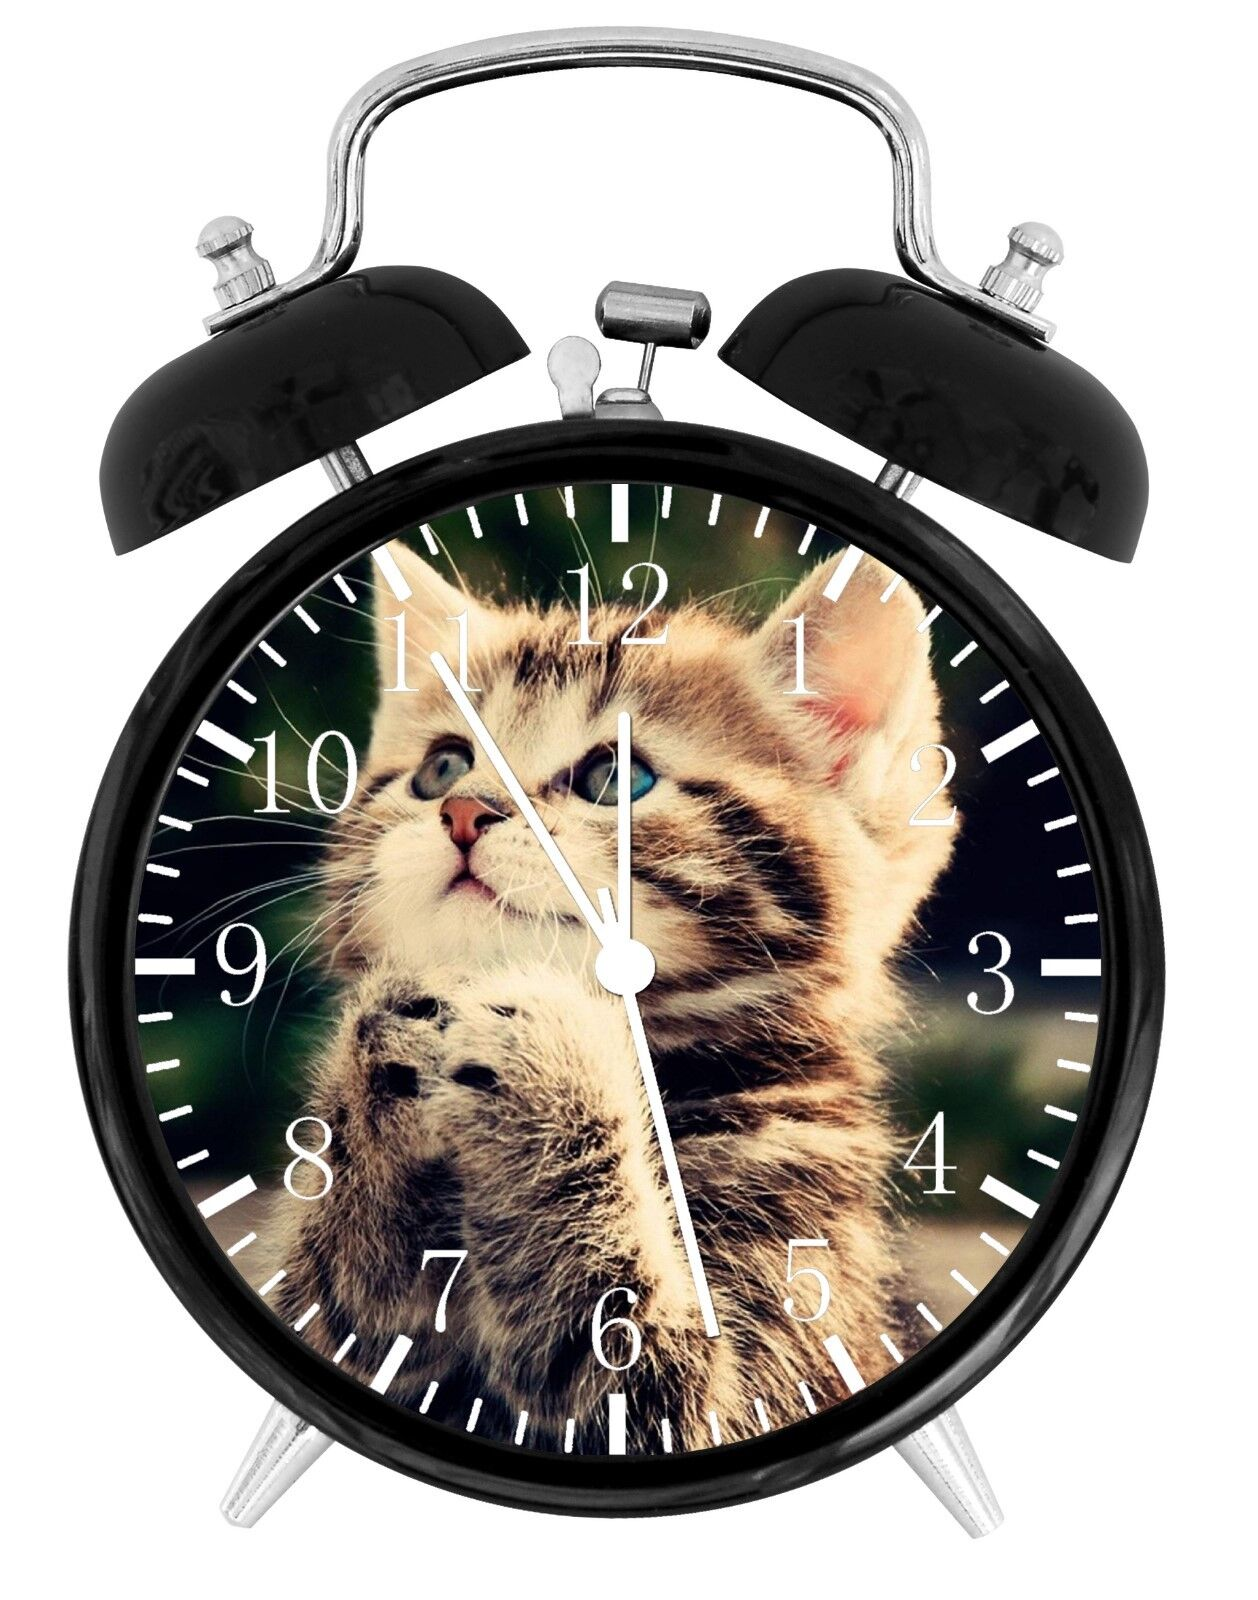 Cute Kitten Cat Alarm Desk Clock Home or Office Decor F77 Ni